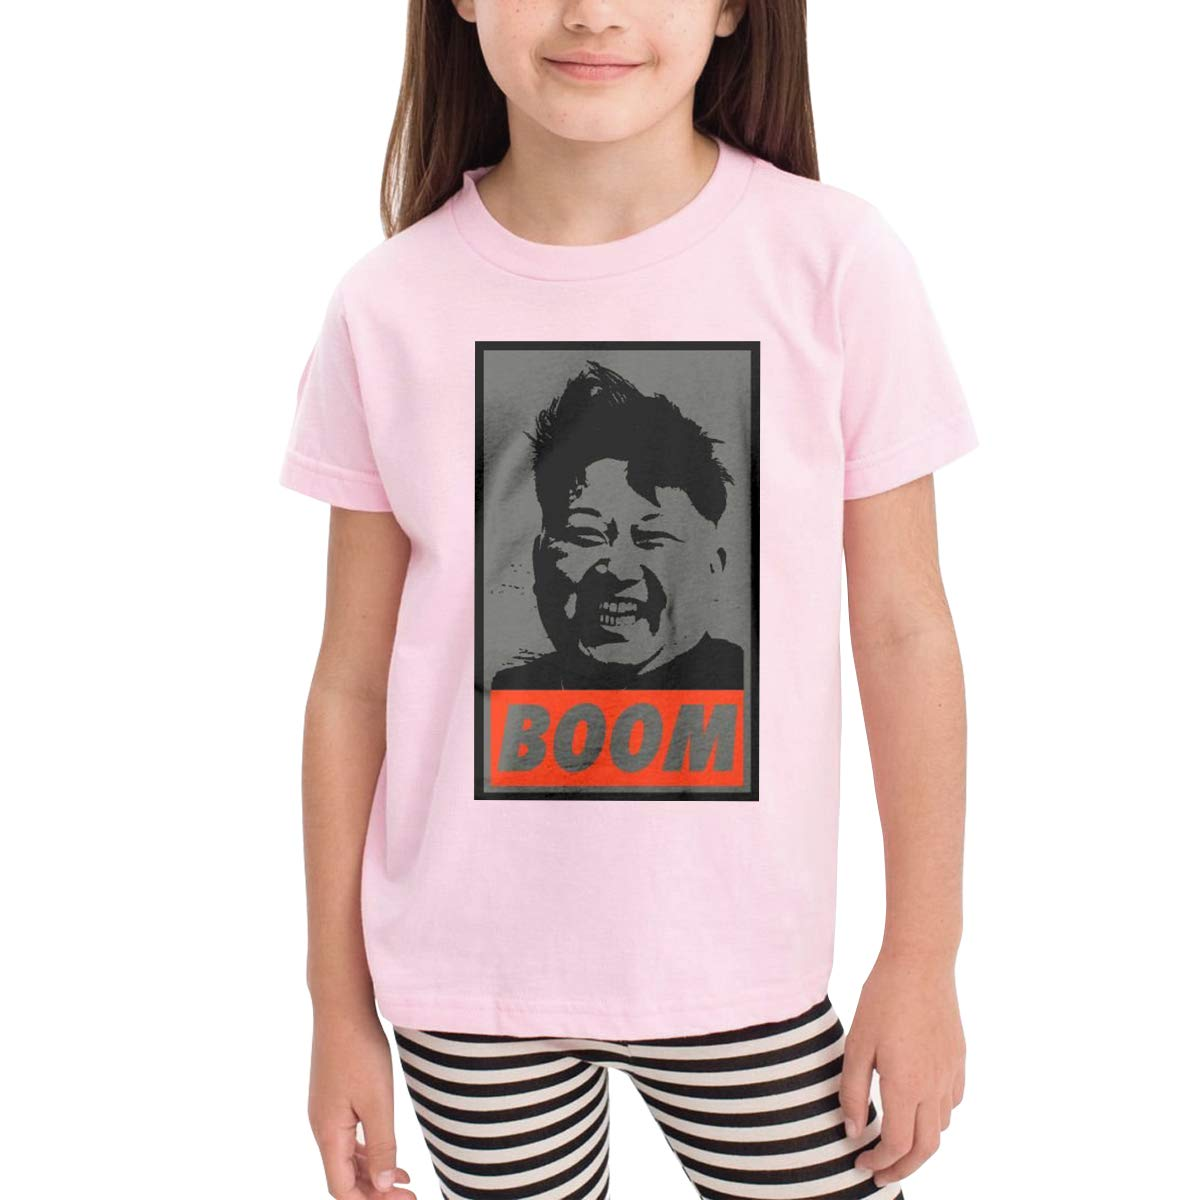 DONGLY 6-24 Month Baby T-Shirt Kim Jong Un Boom Nordic Winter Personality Wild Pink